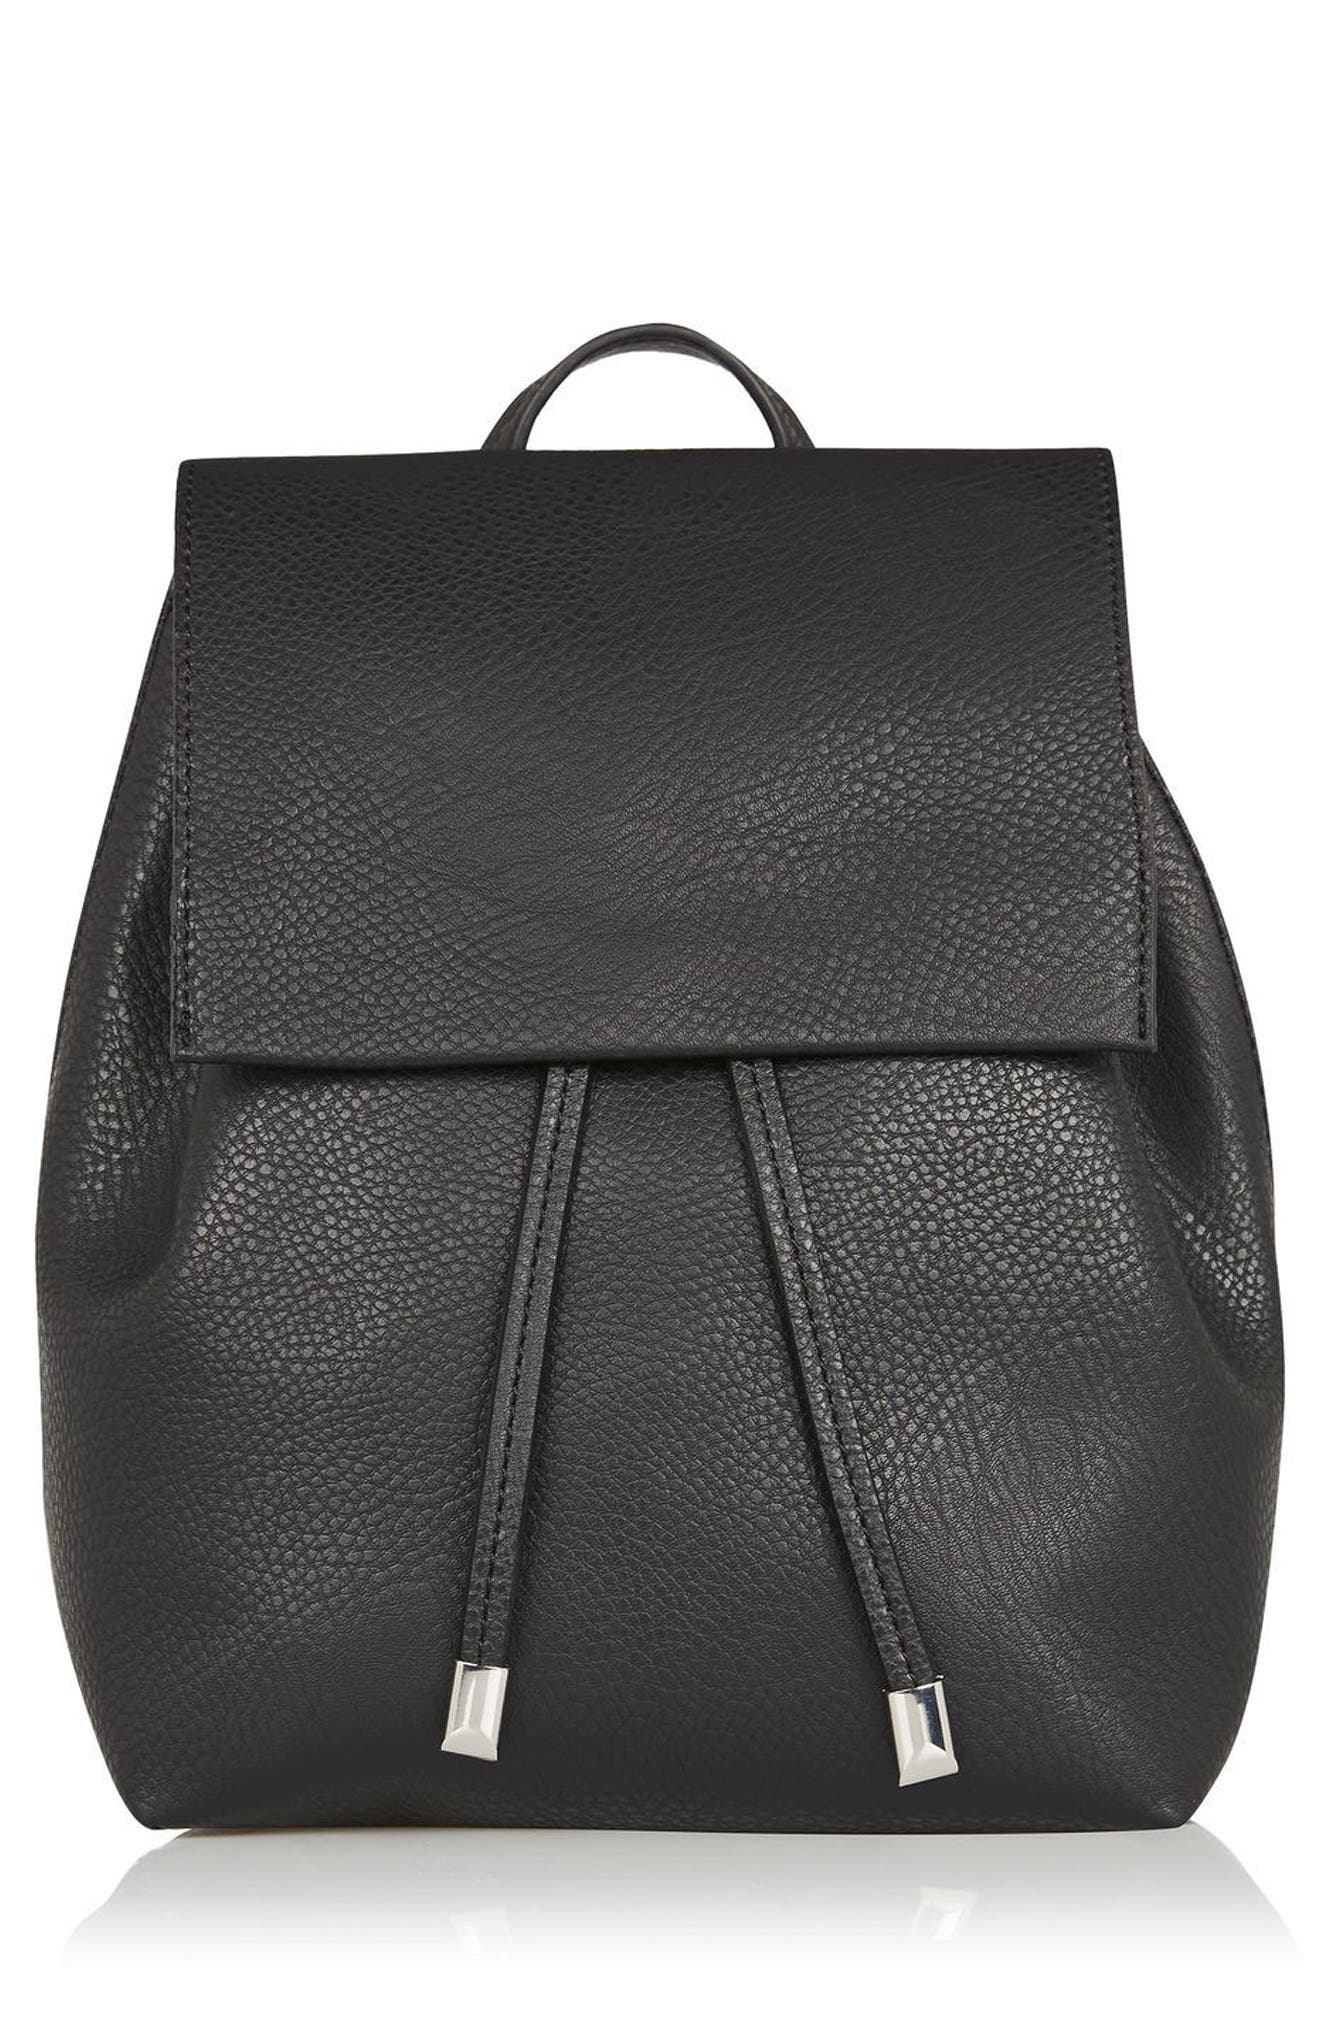 Main Image - Topshop Chain Strap Mini Faux Leather Backpack